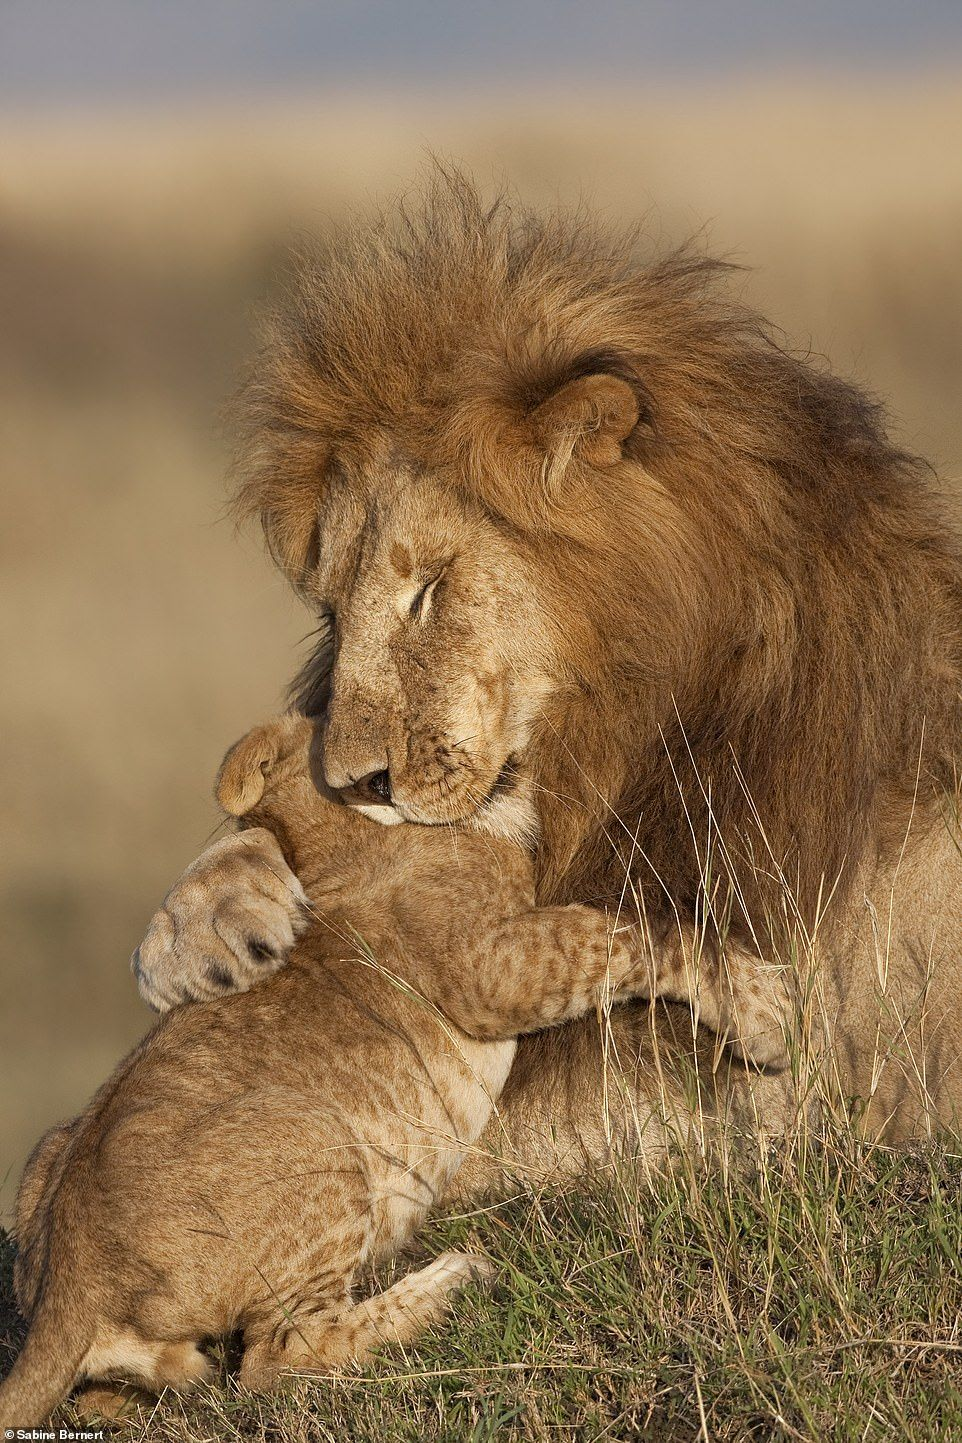 Stunning images of lions in Africa showcase work of 10 photographers